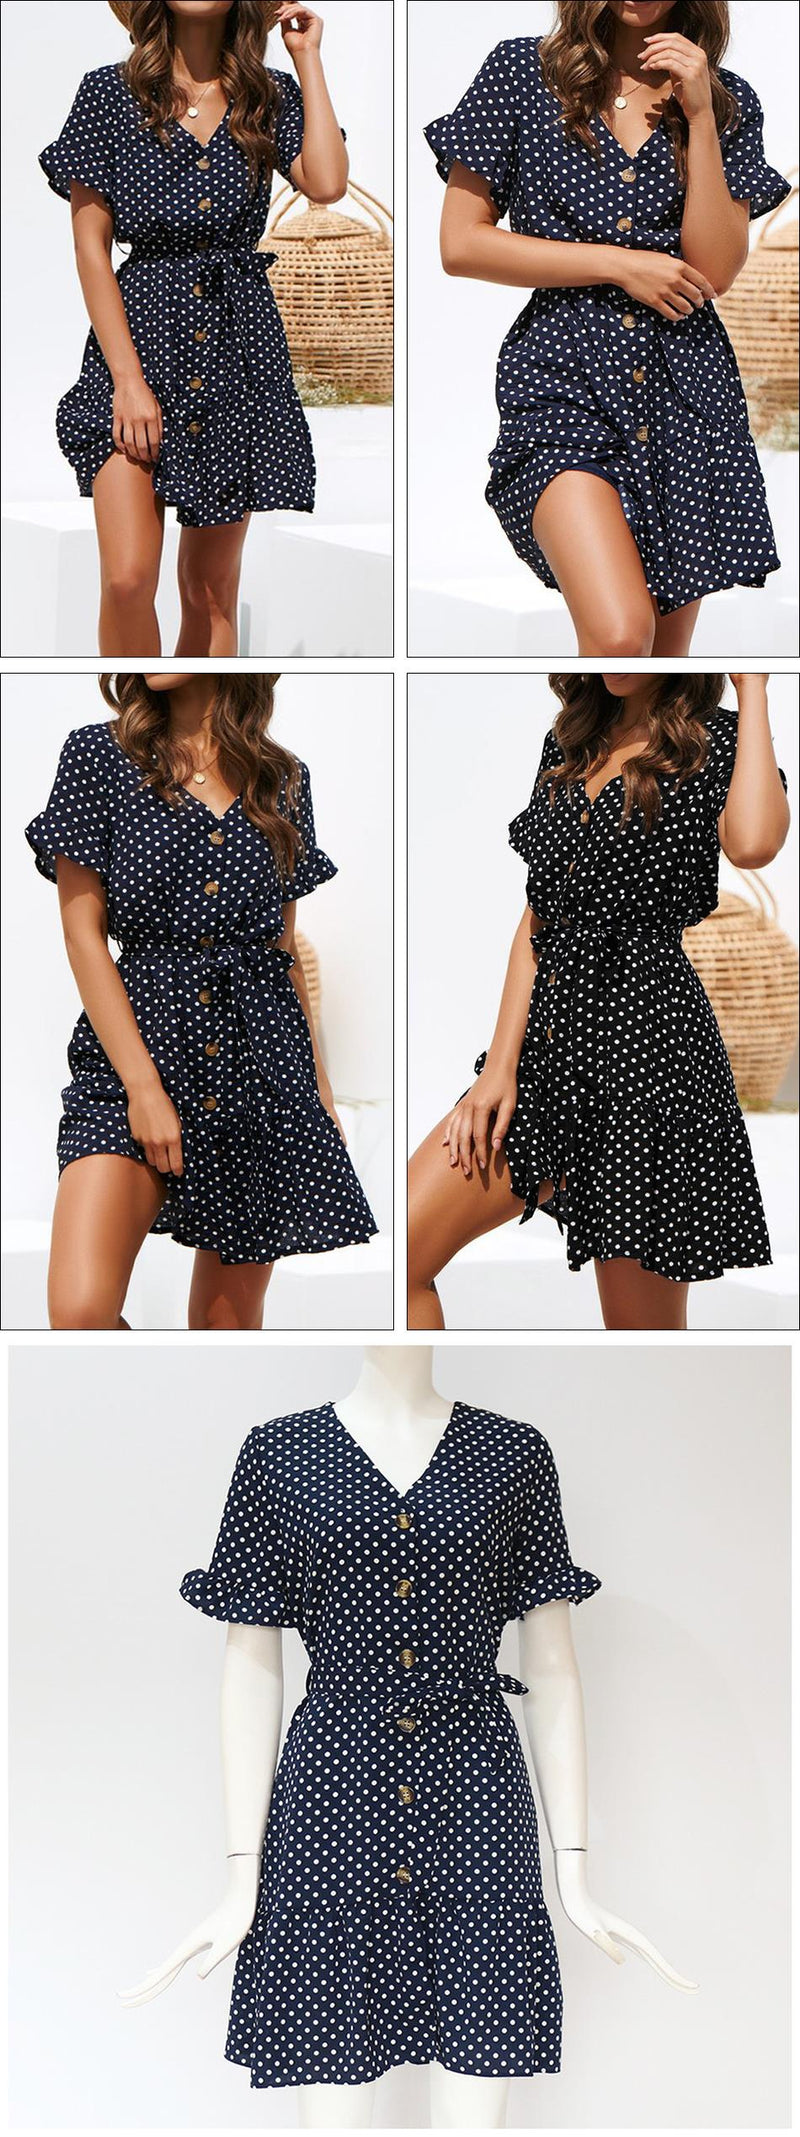 Lossky Women Casual Dress Hot Chiffon Polka Dot Print V-neck Mini Dress Summer Lace Up Button Butterfly Sleeve Dress Plus Size - SunLify